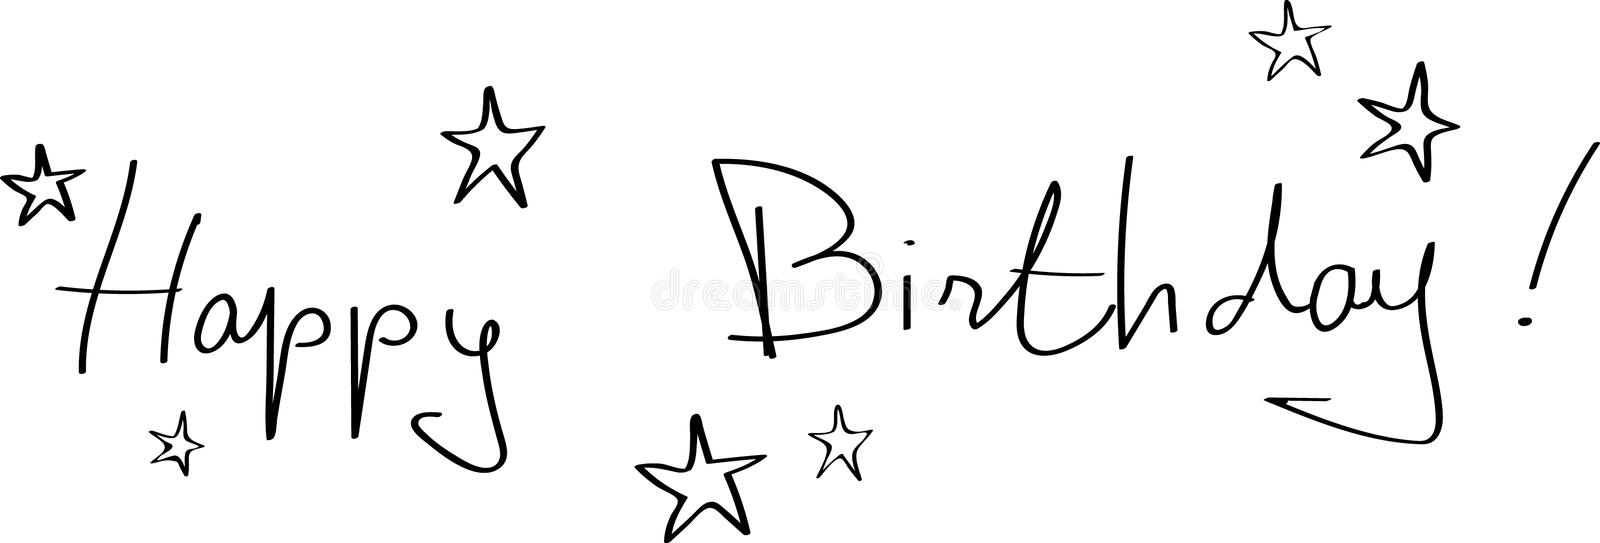 Happy birthday banner royalty free stock images